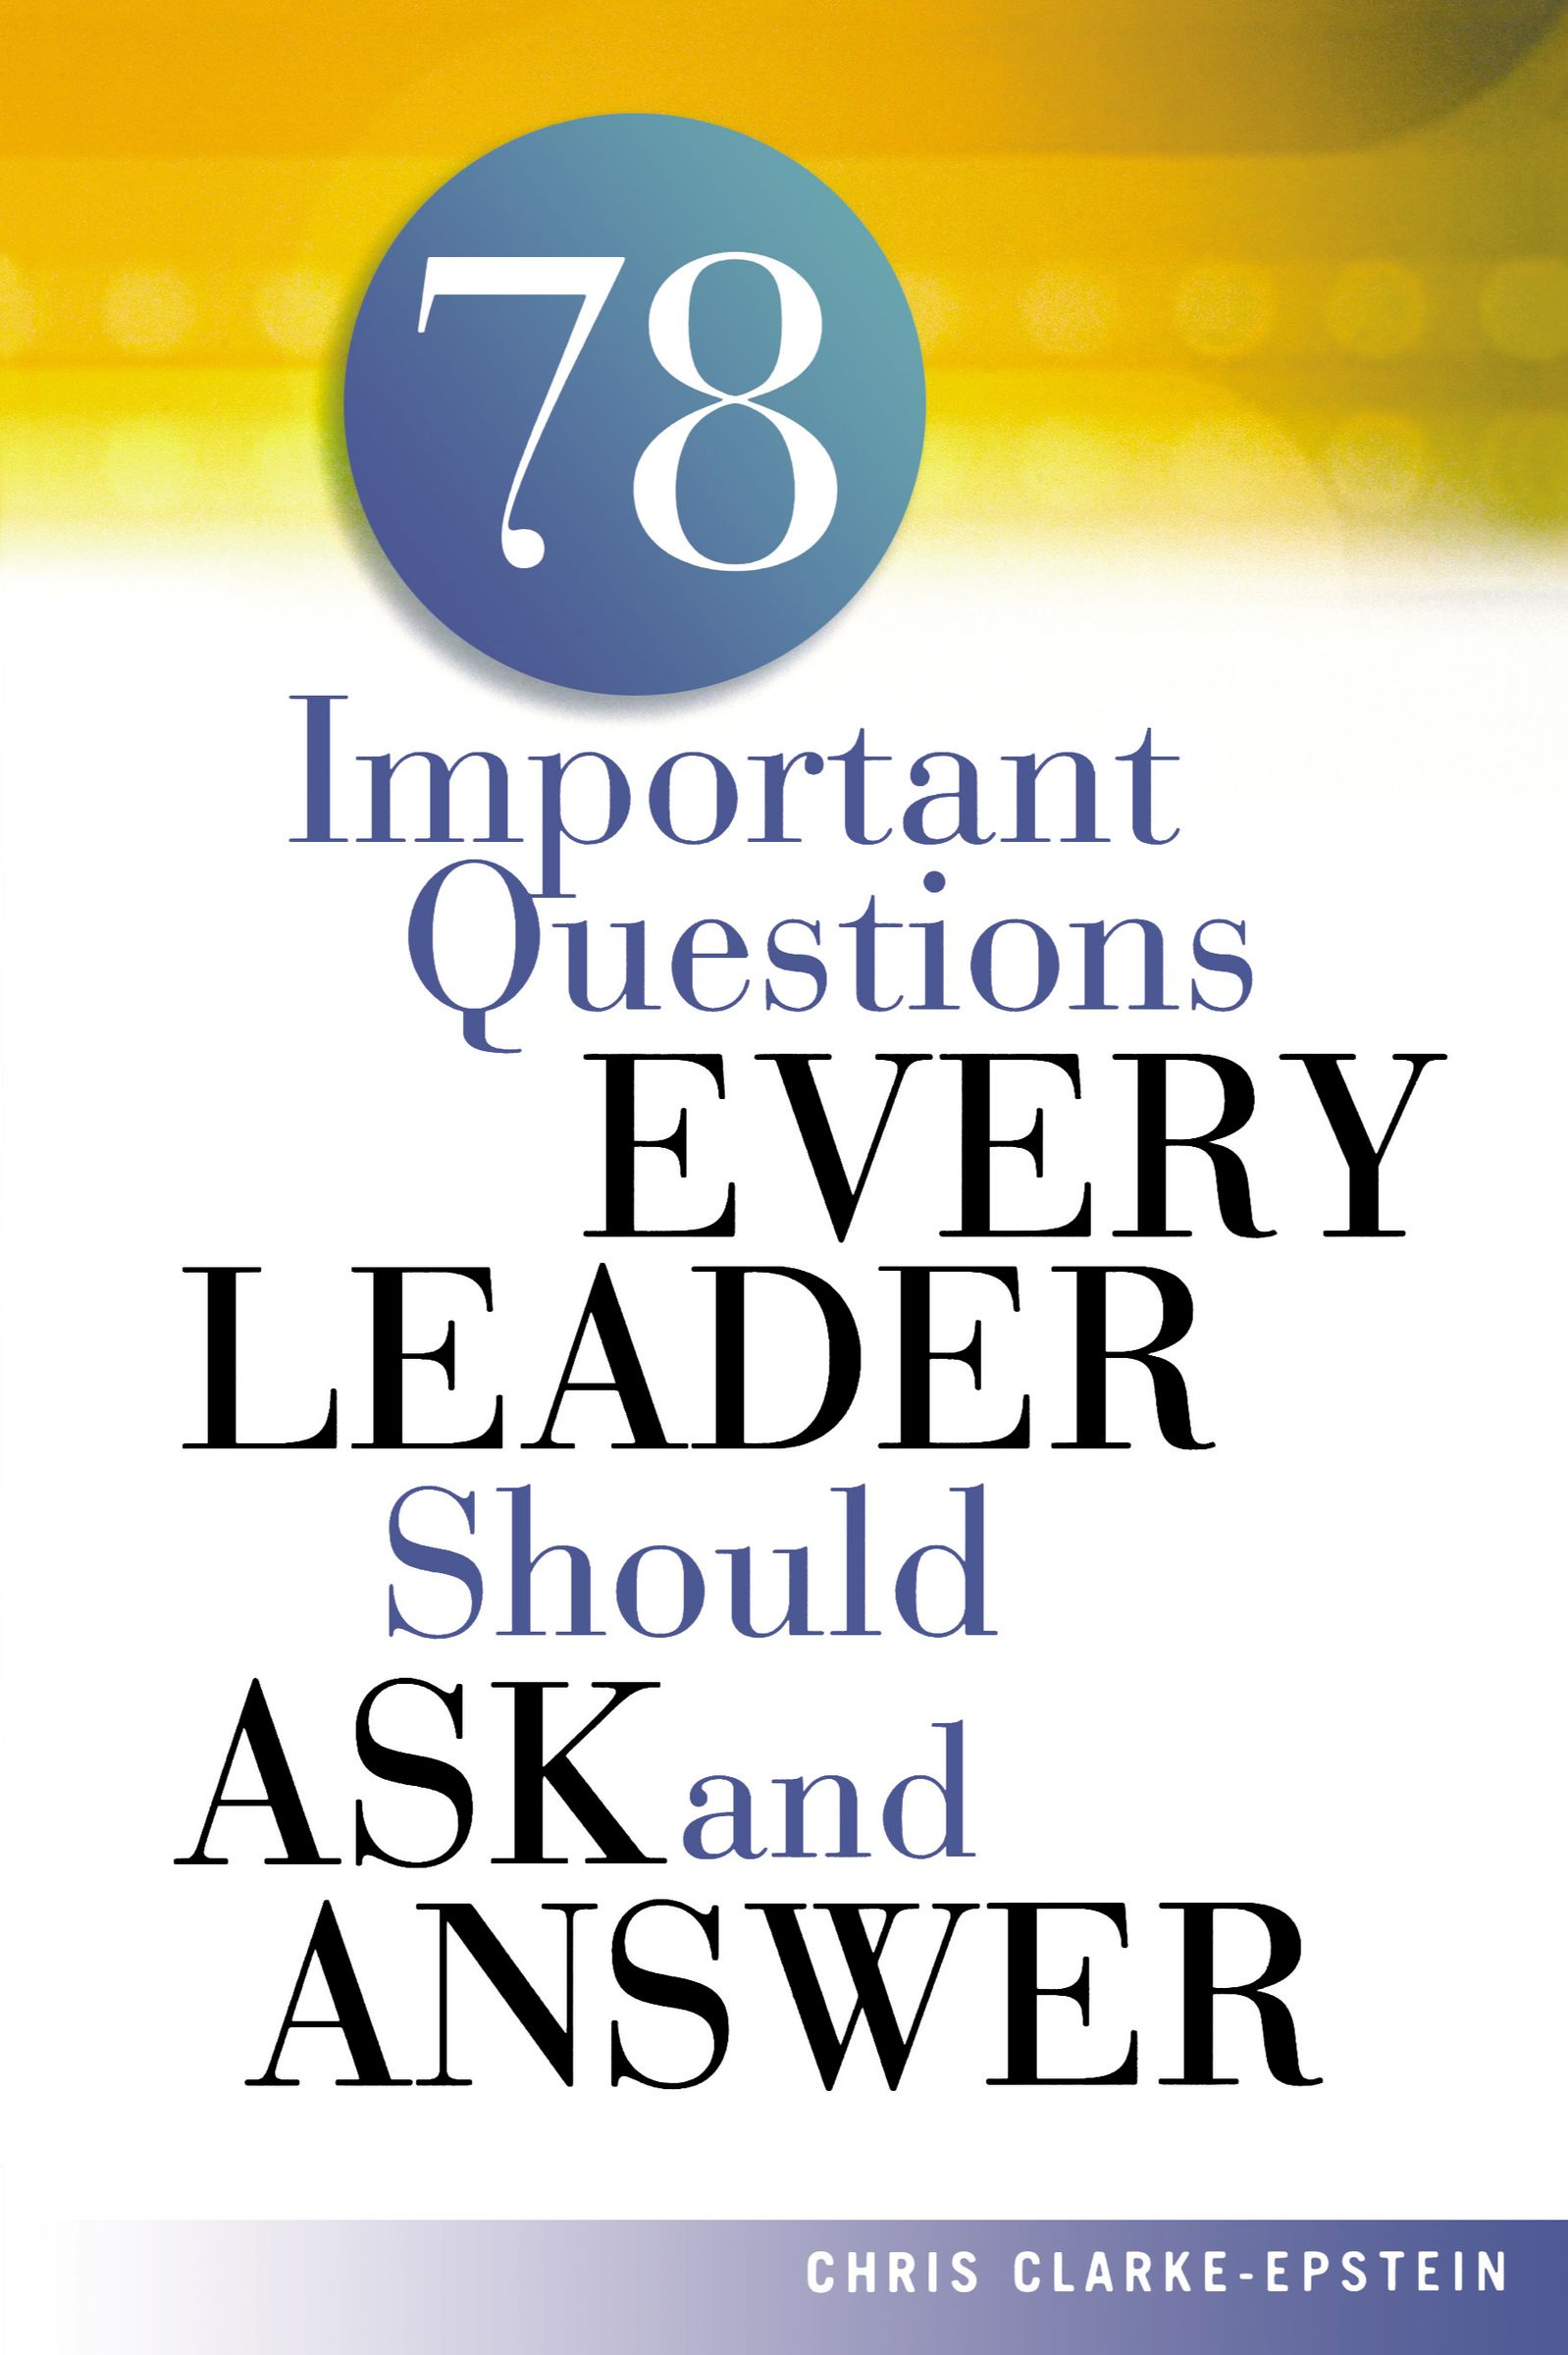 A 78 Important Questions Every Leader Should Ask and Answer